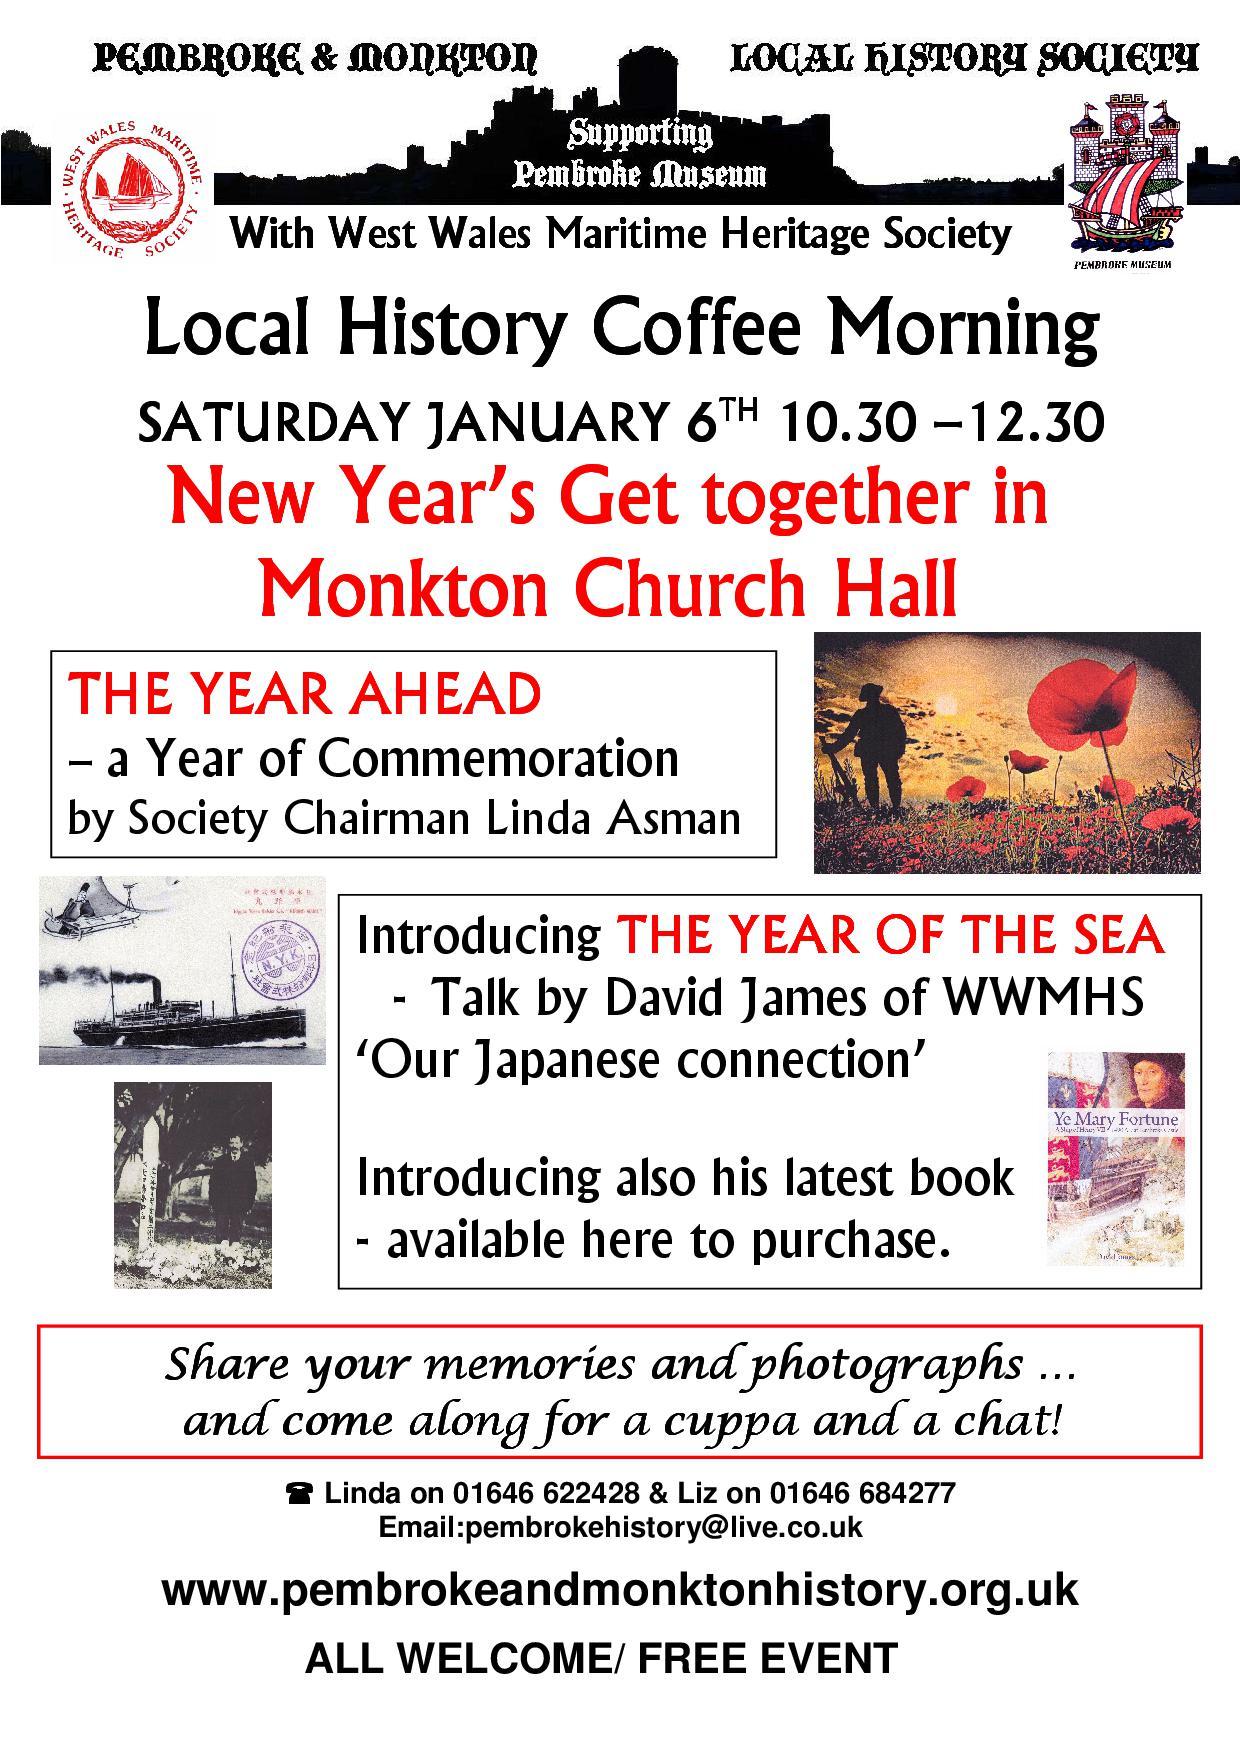 2018: a year of commemoration for Pembroke & Monkton History Society